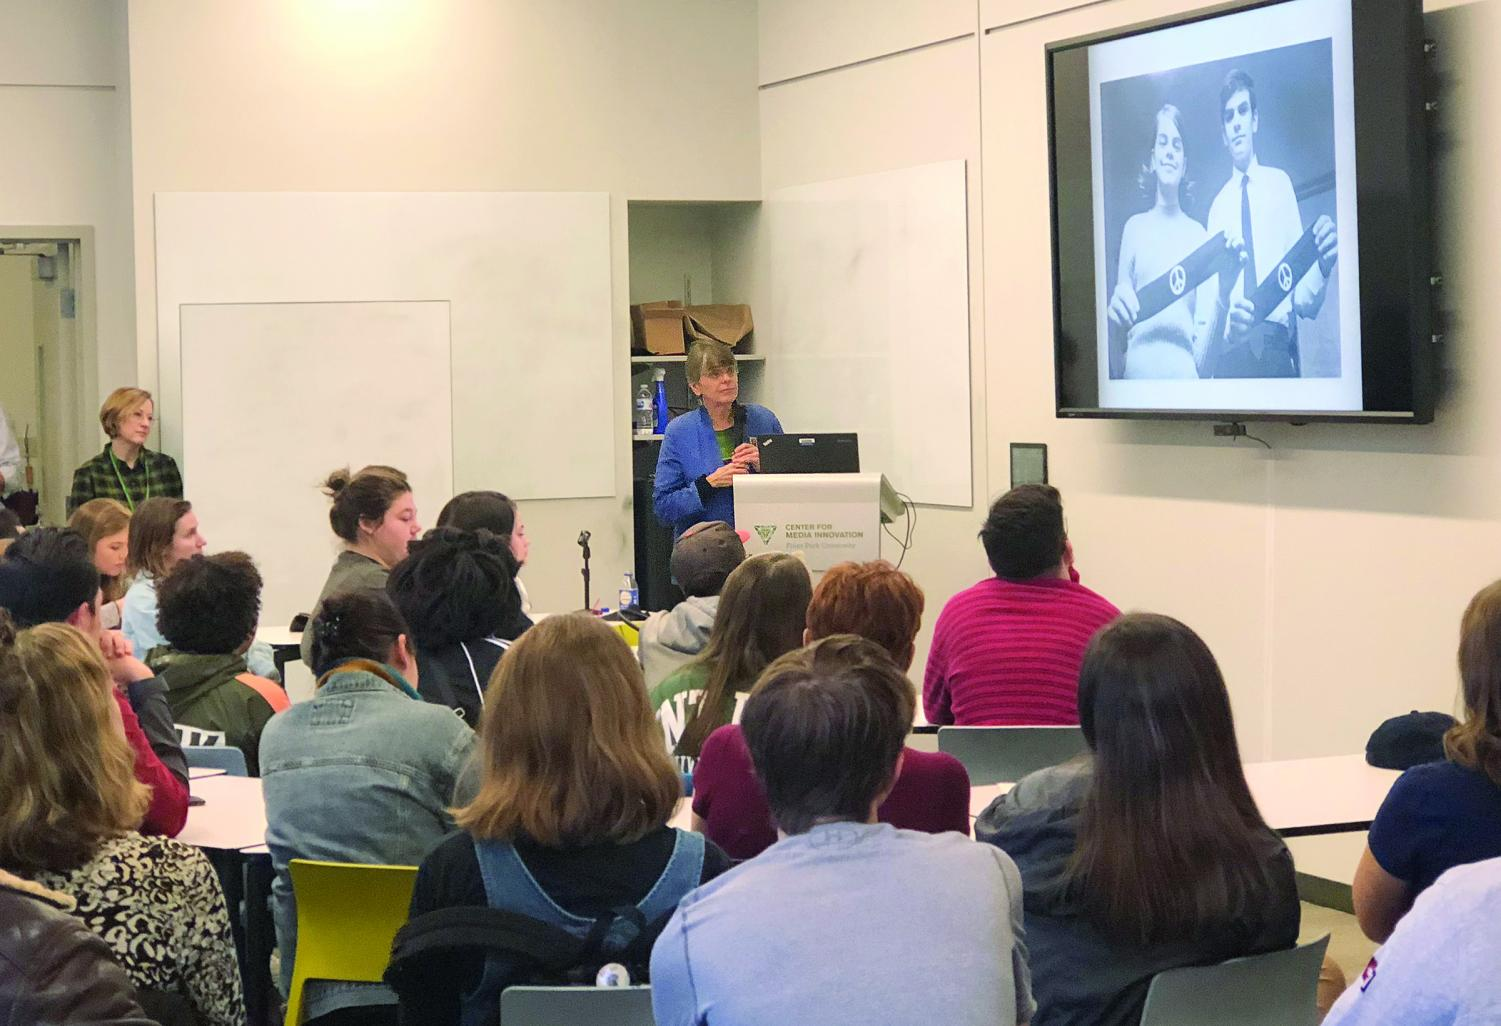 Mary Beth Tinker presents a photo of herself with her iconic armband to students at the CMI.